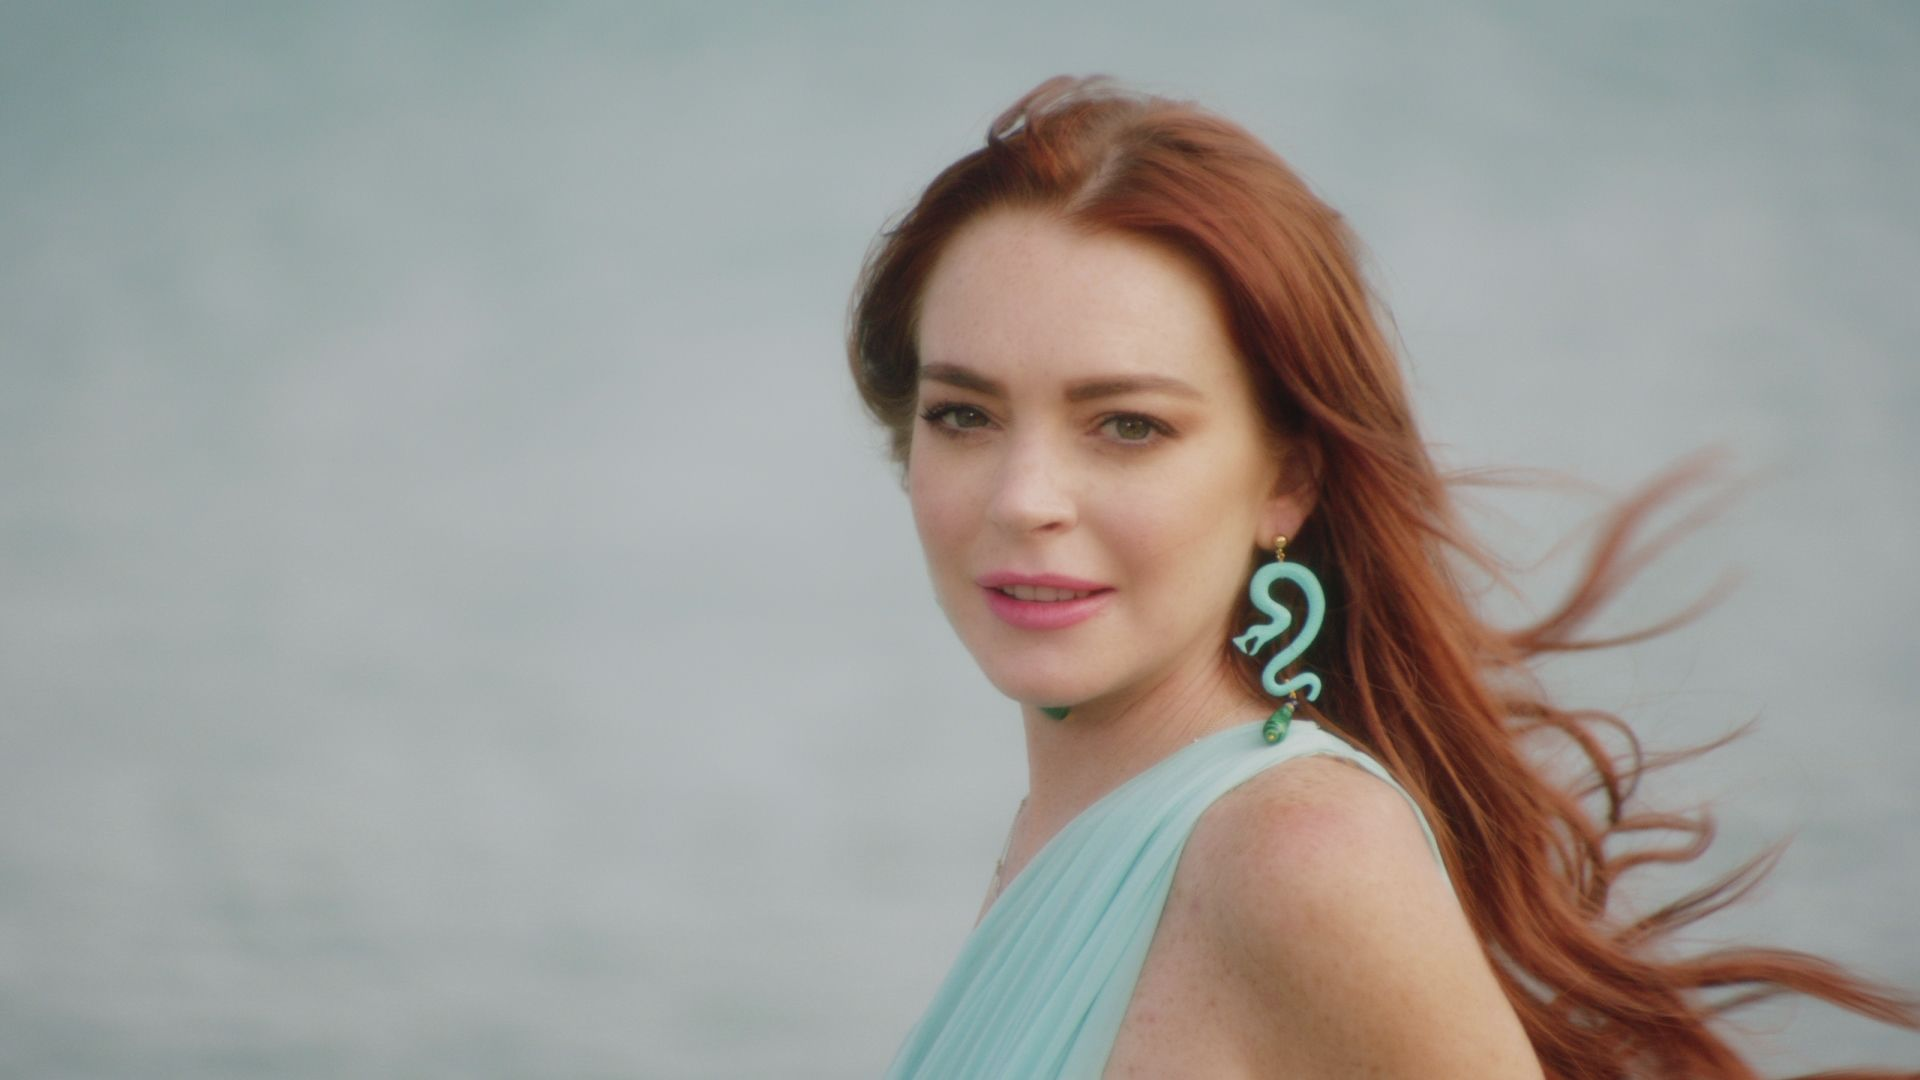 Lindsay Lohan's Beach Club - Season 1, Ep. 13 - Welcome to ...